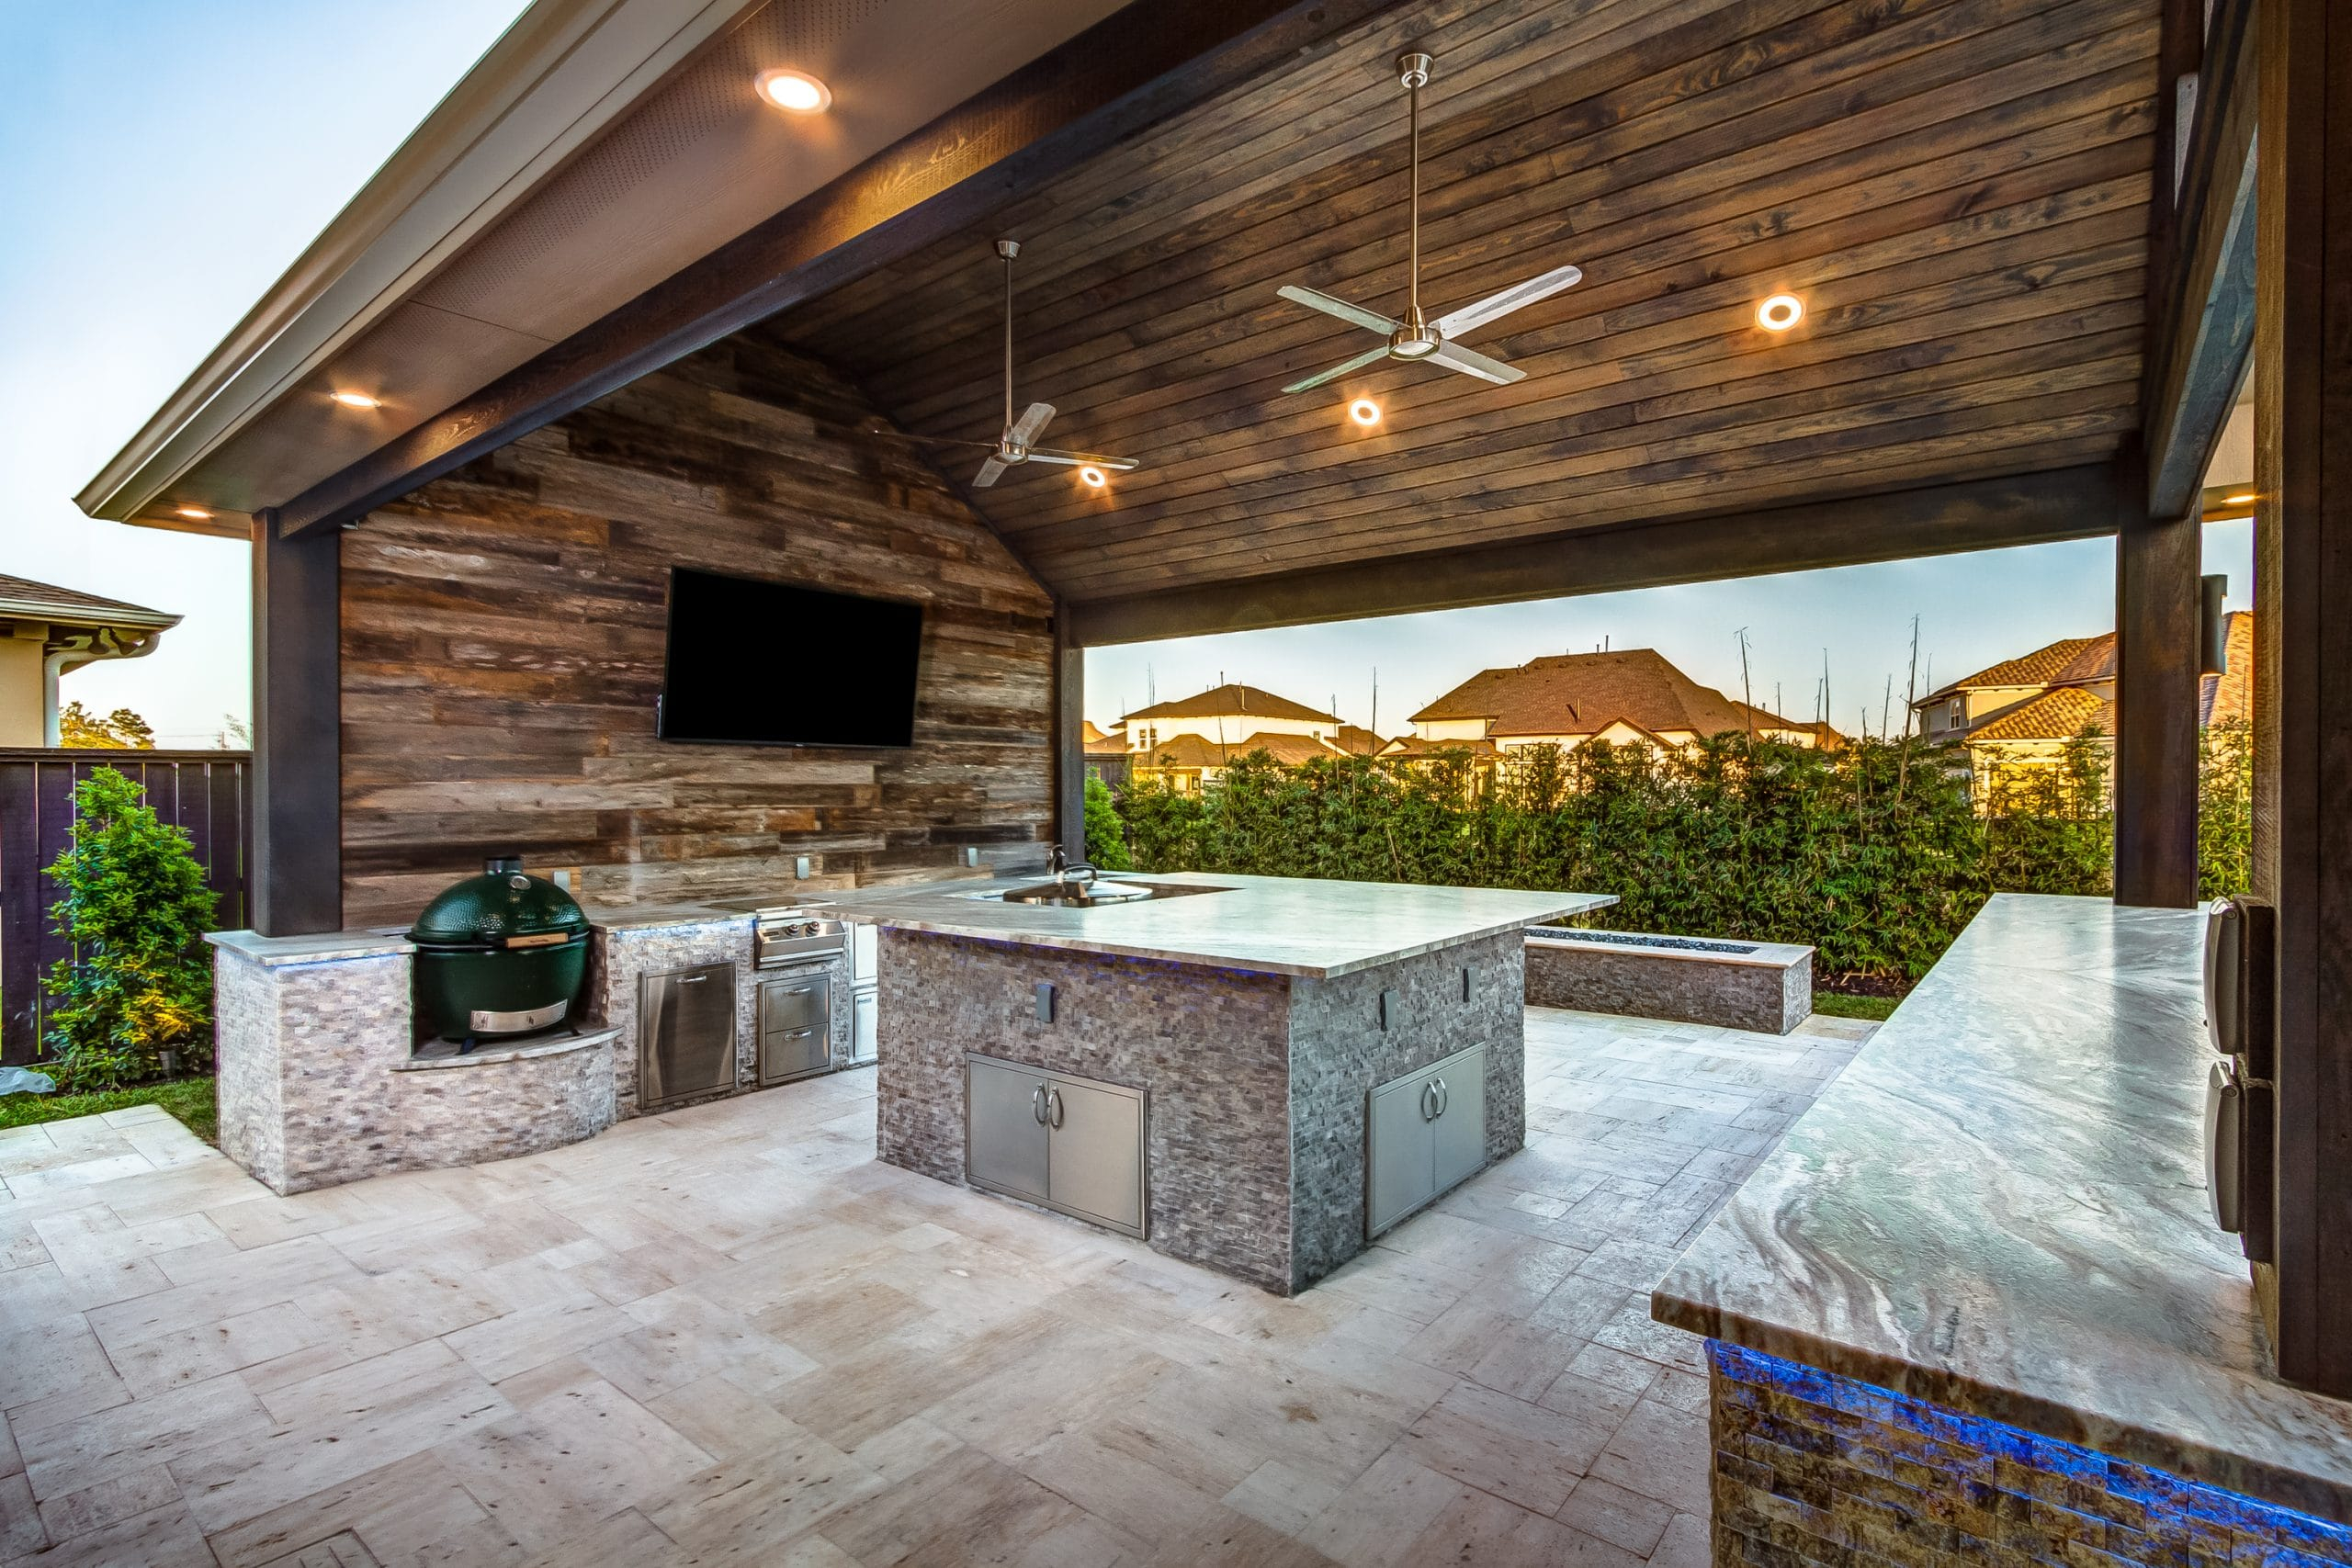 5 Natural-Looking Stones Perfect For Outdoor Kitchens